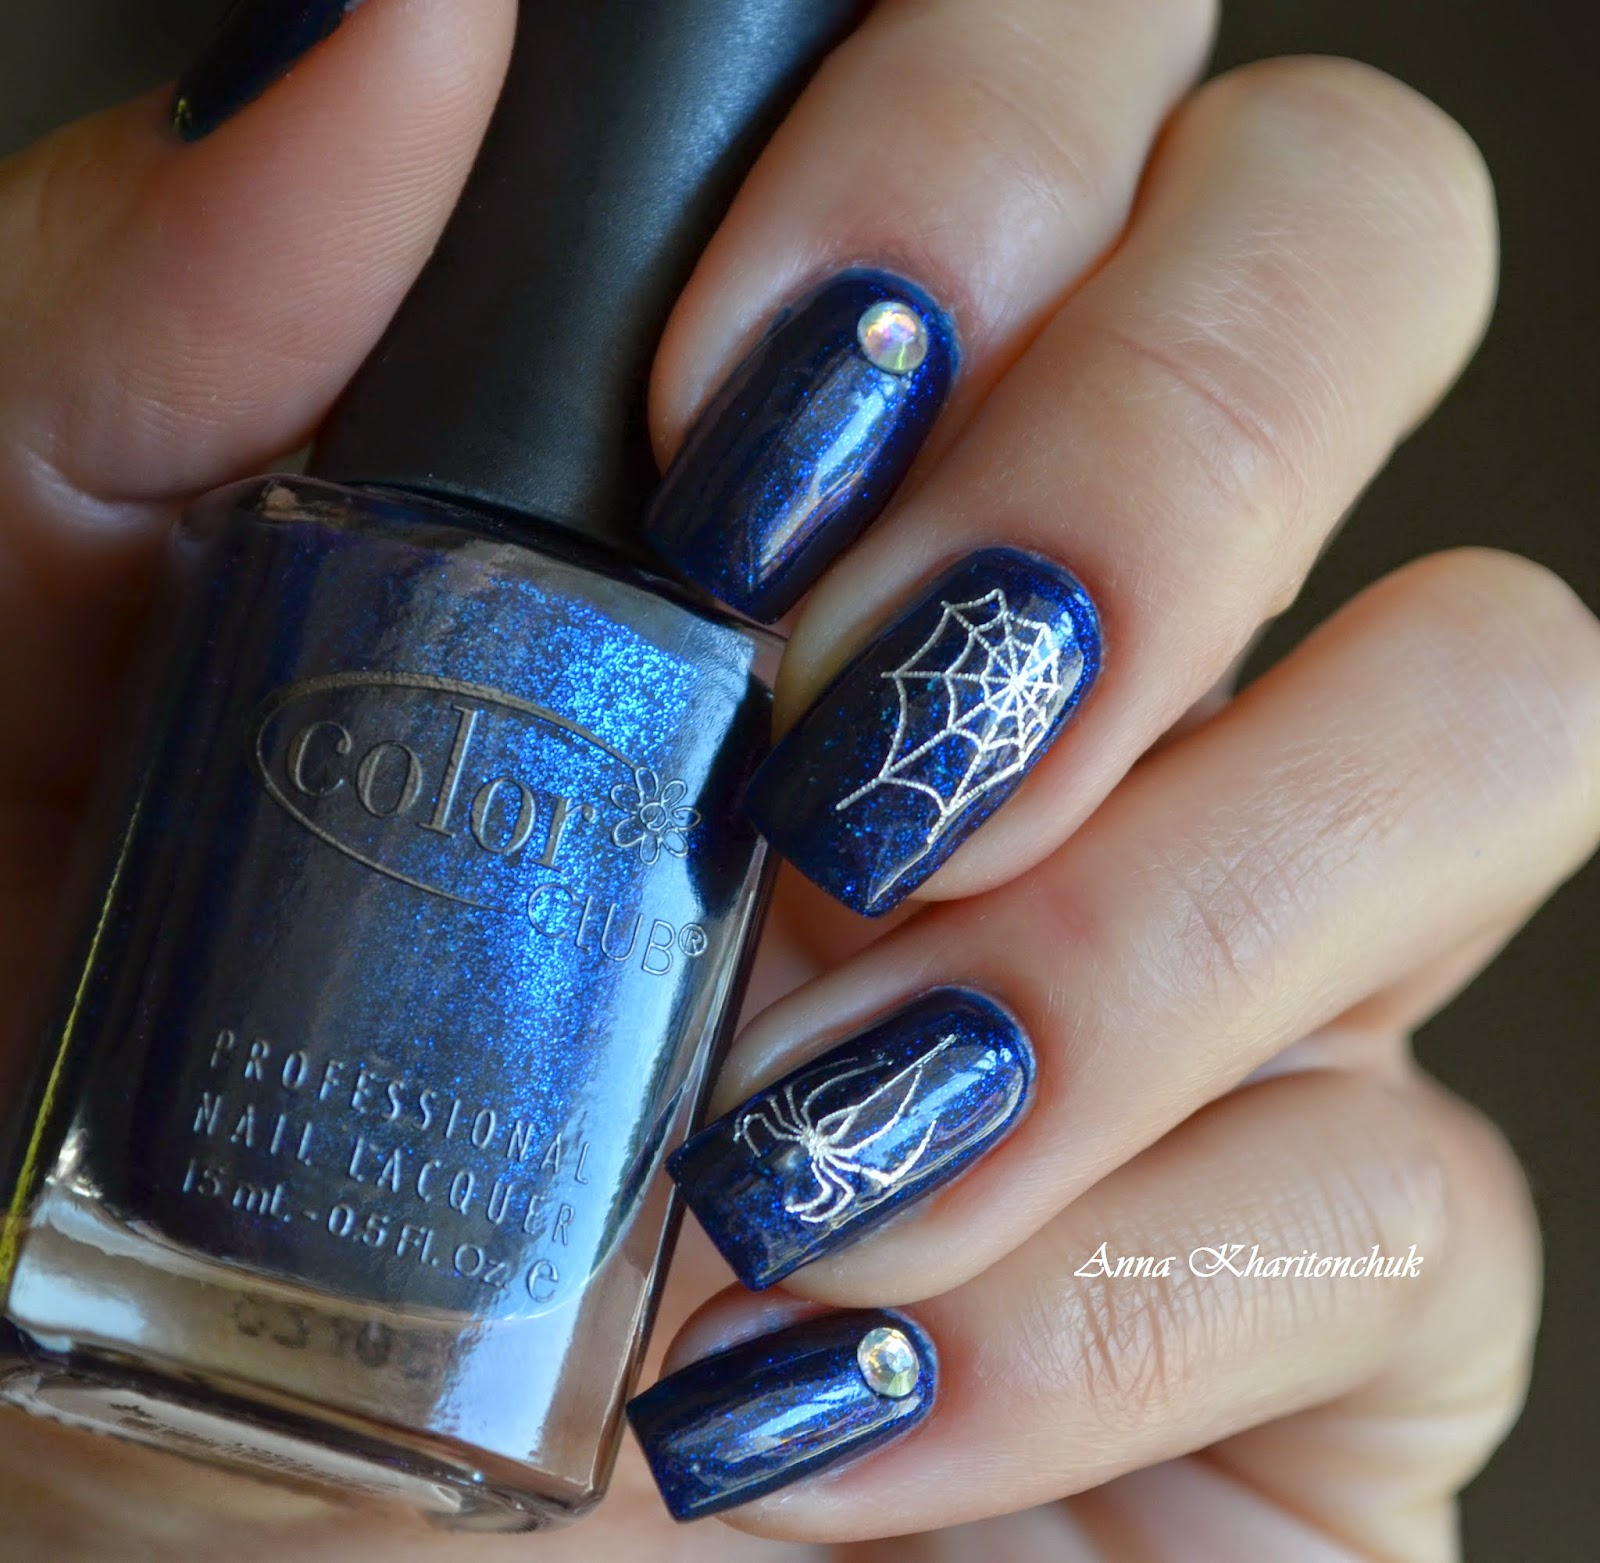 Color Club Williamsburg 1001, наклейки и стразы Born Pretty Store, маникюр на Halloween